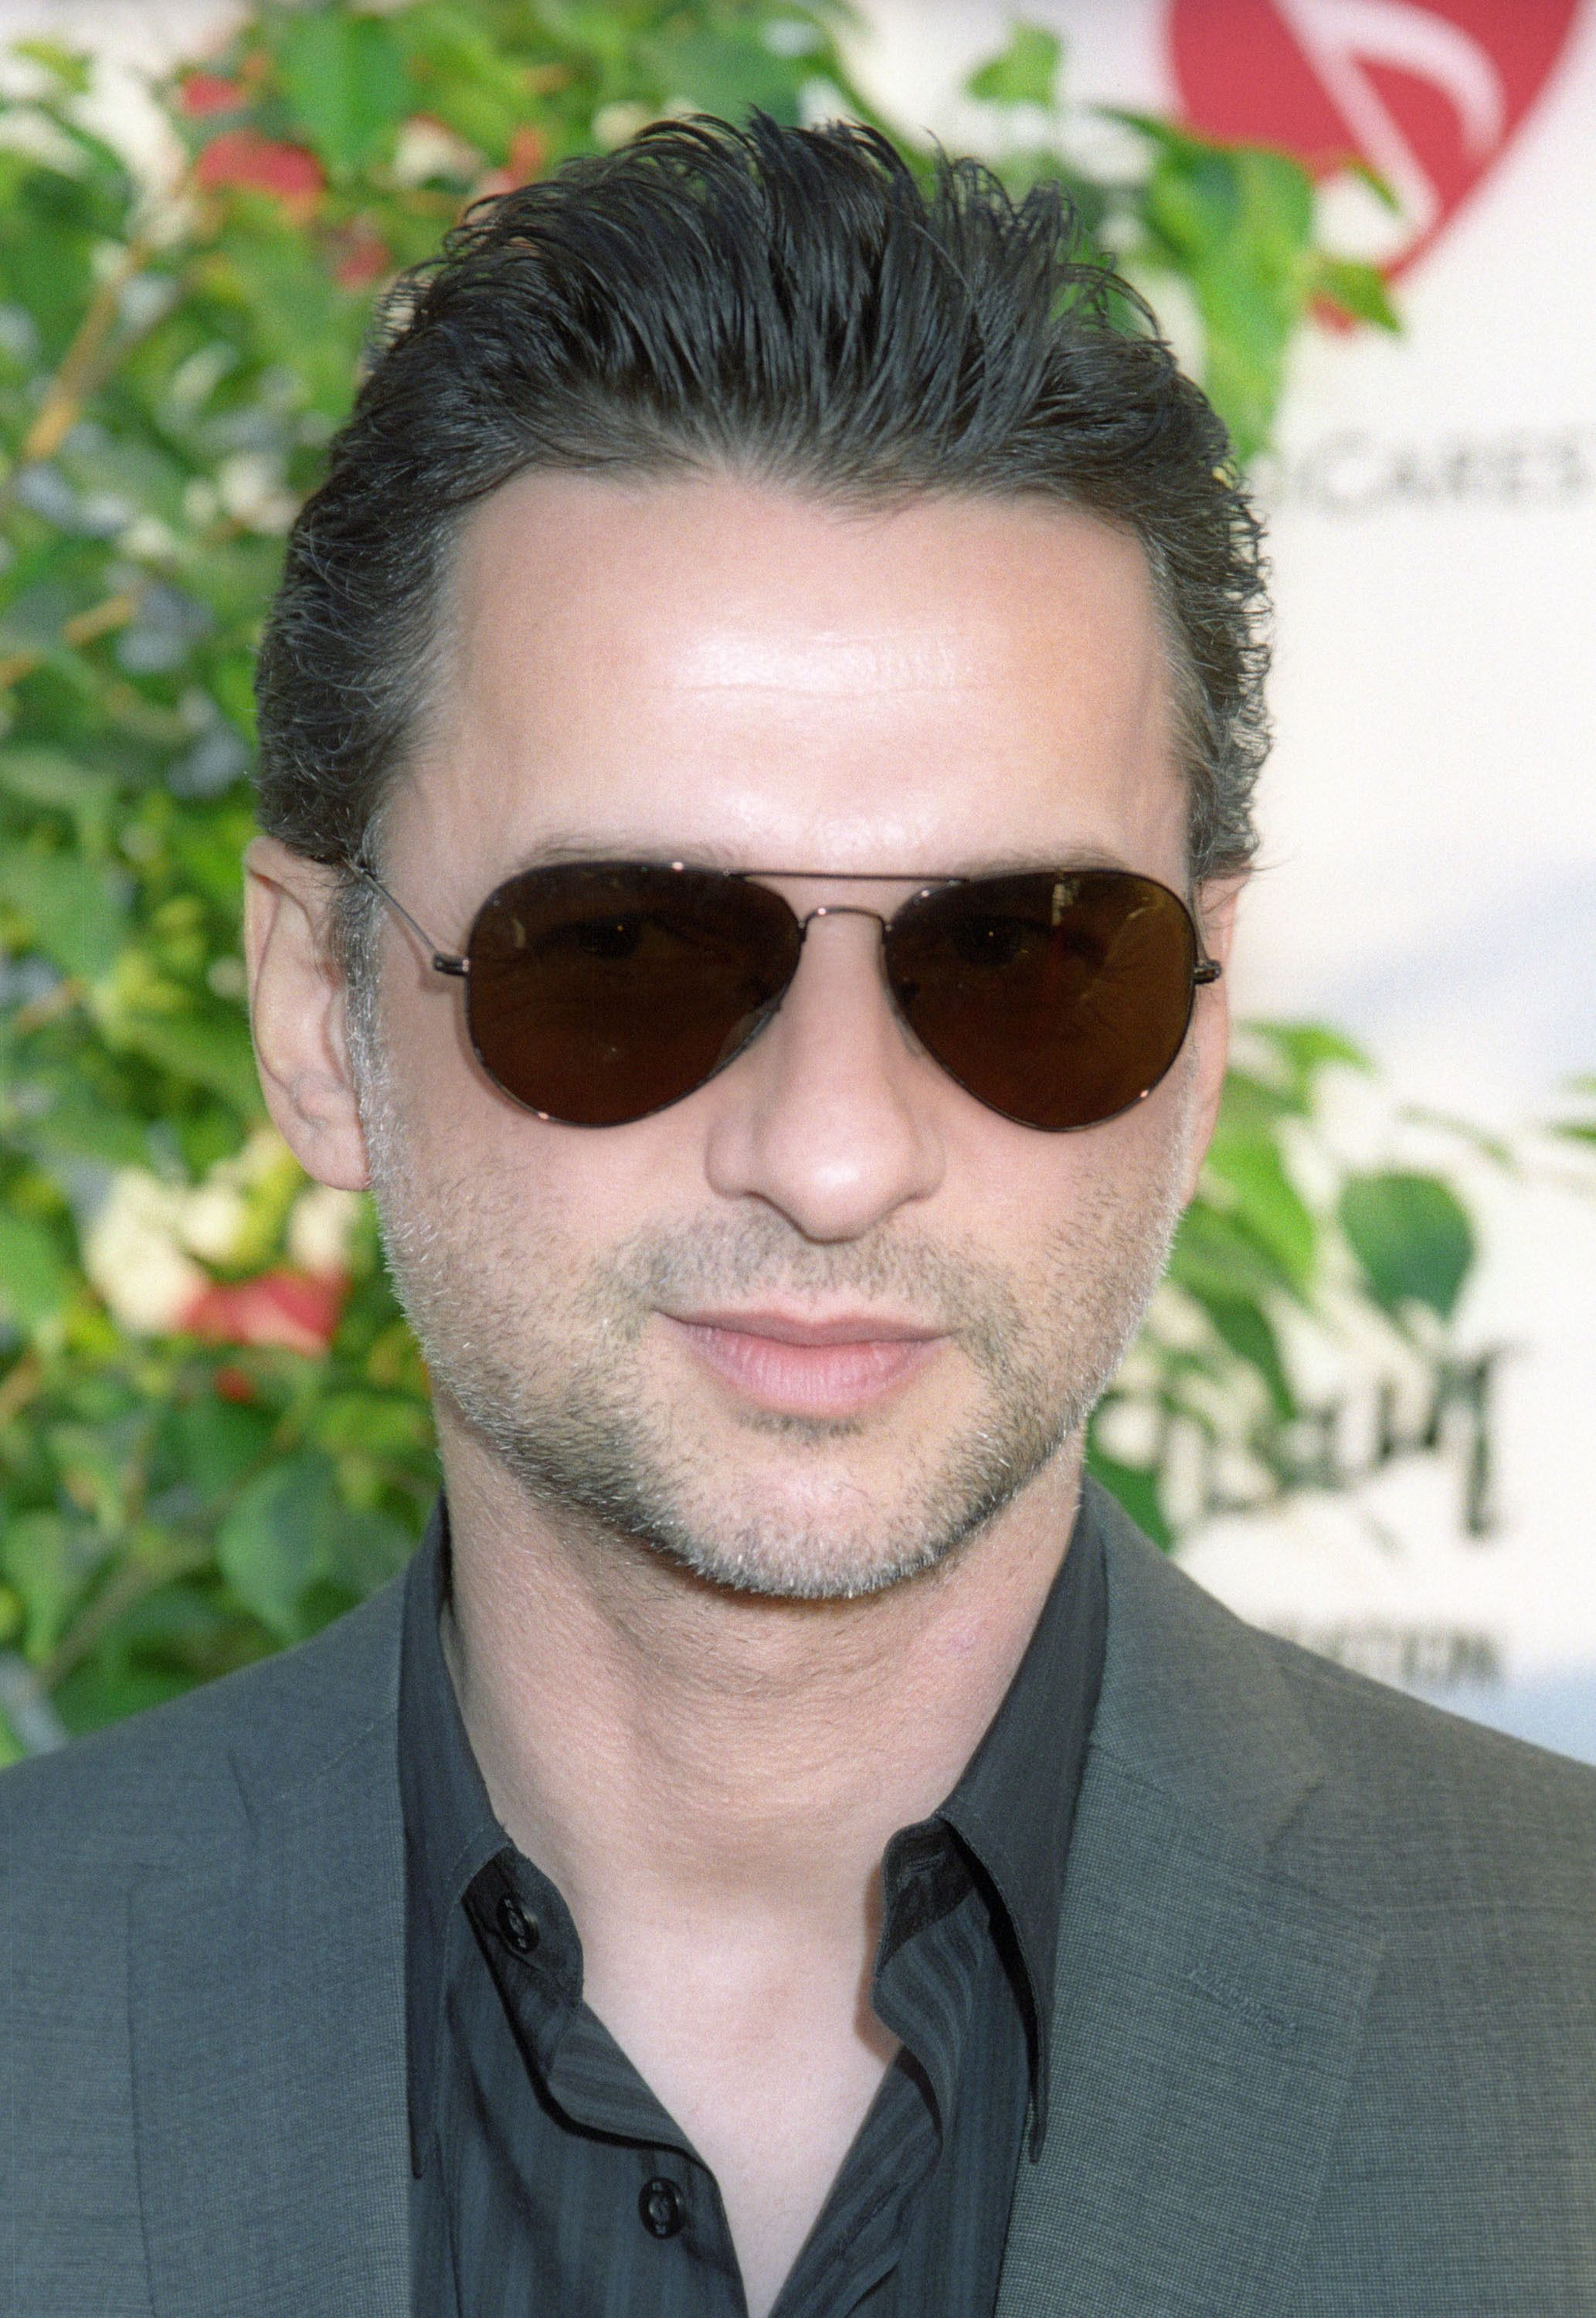 Sexy wearing his sunglasses!   Dave Gahan The Hot One   Tøj